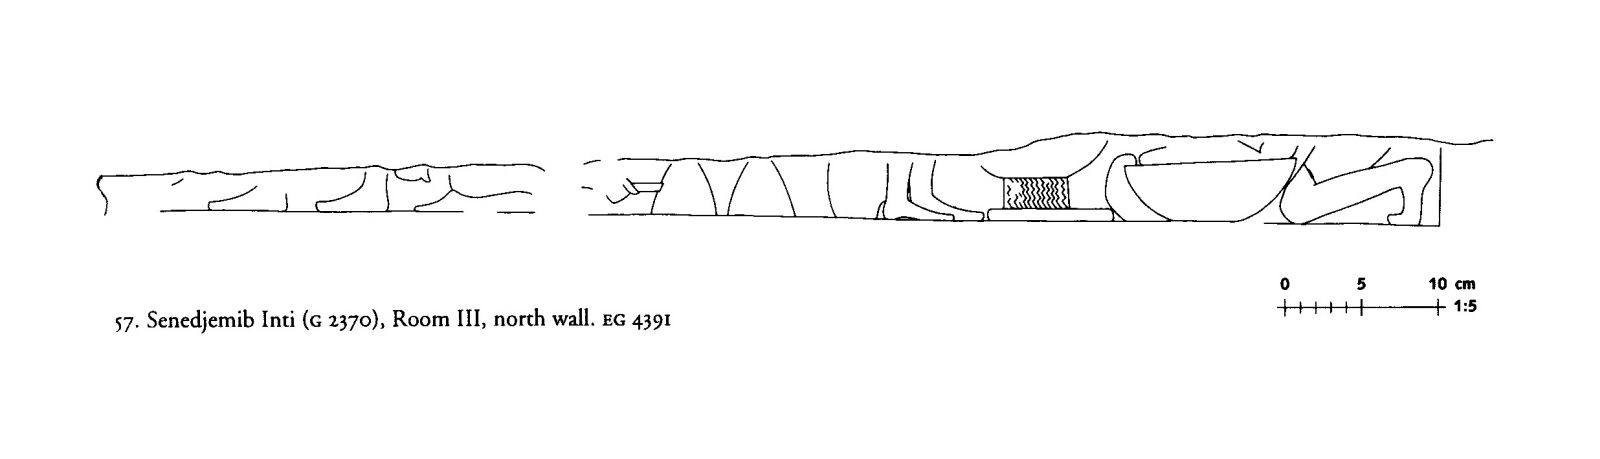 Drawings: G 2370: relief from Room III, N wall